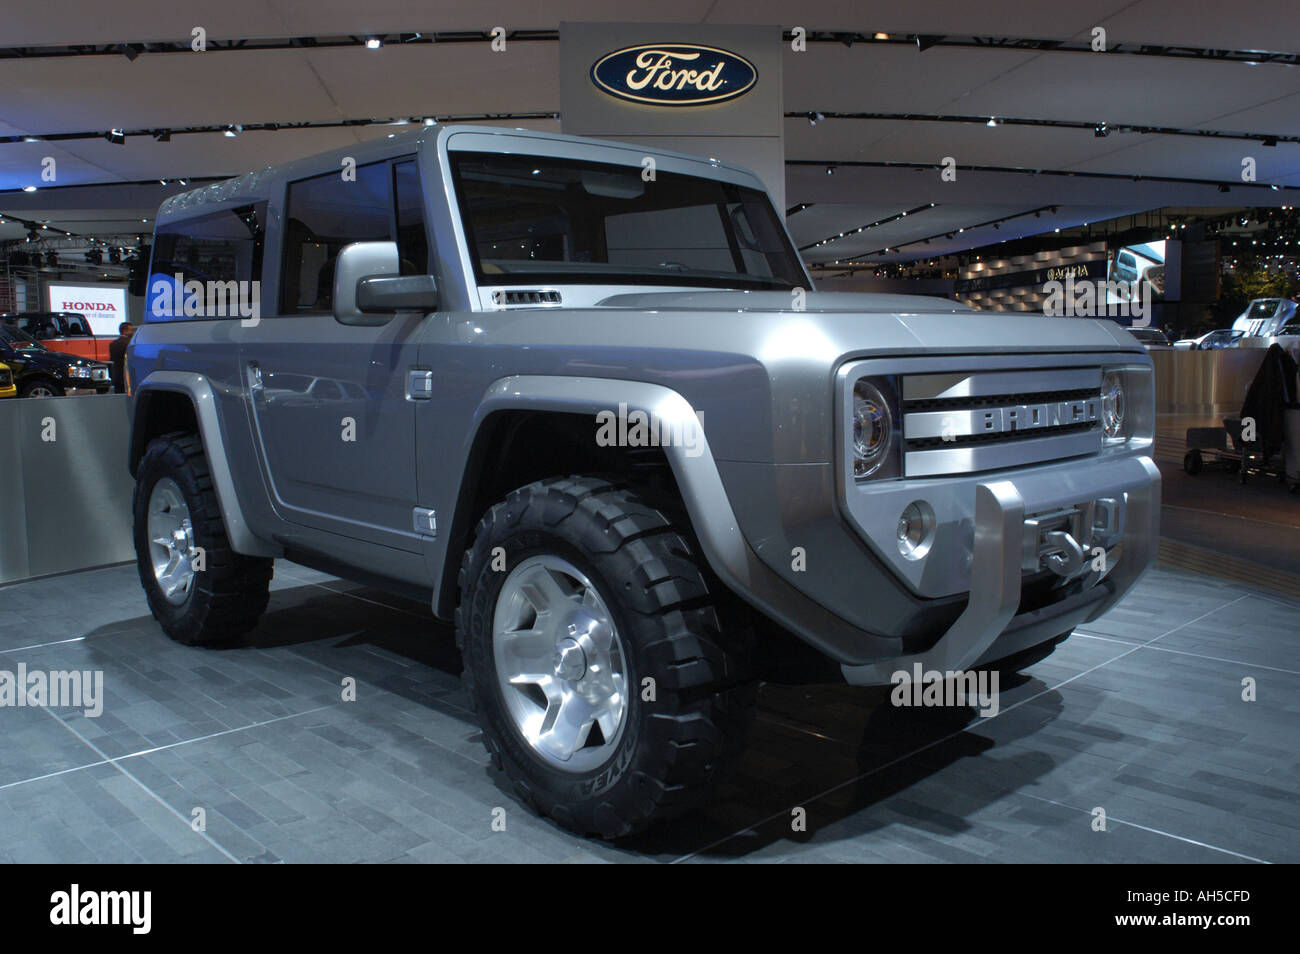 Bronco Car Stock Photos Amp Bronco Car Stock Images Alamy